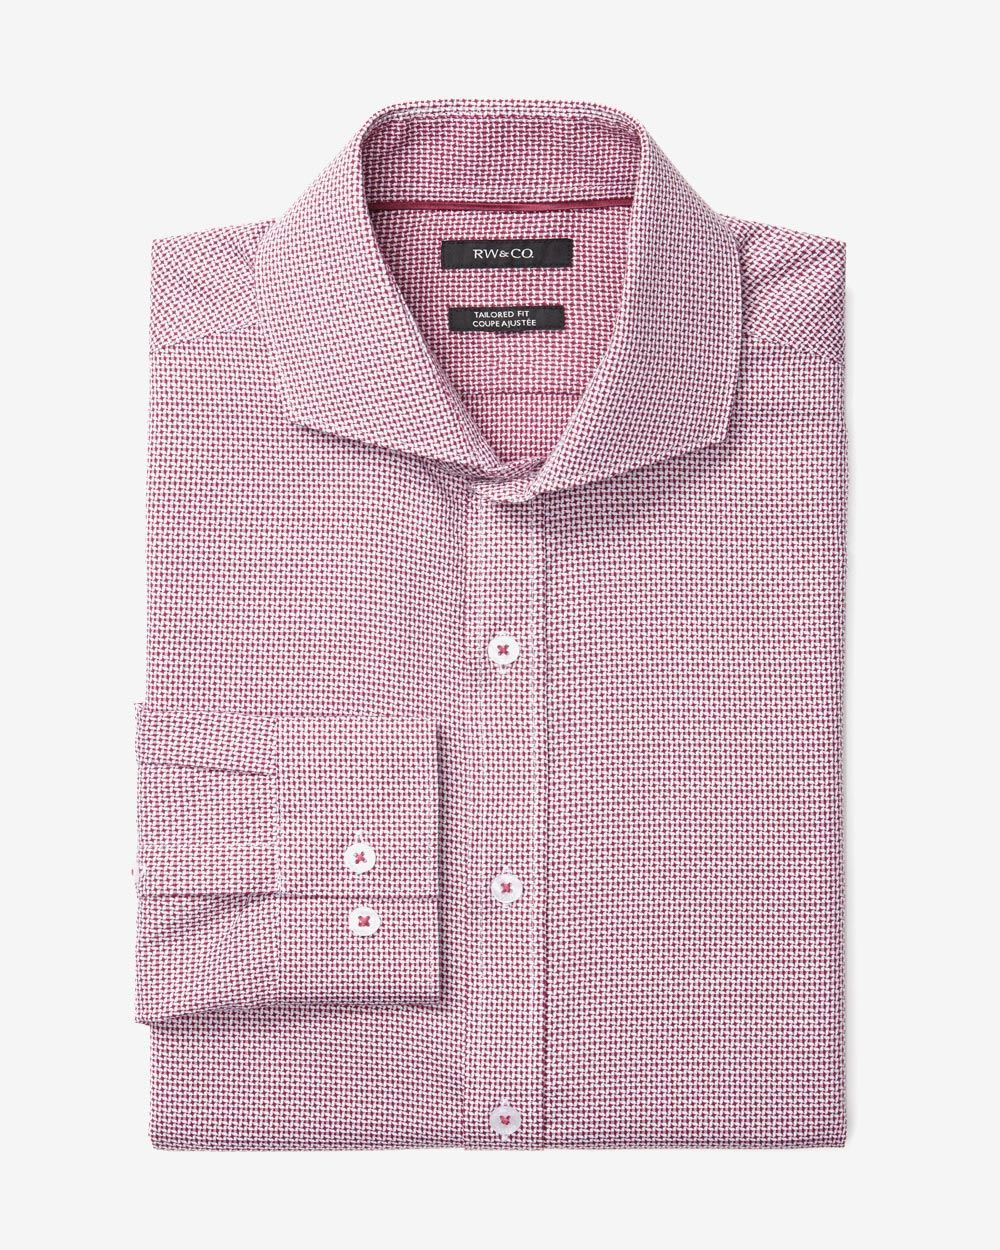 Tailored fit dress shirt in red and white pattern rw co for Tailoring a dress shirt